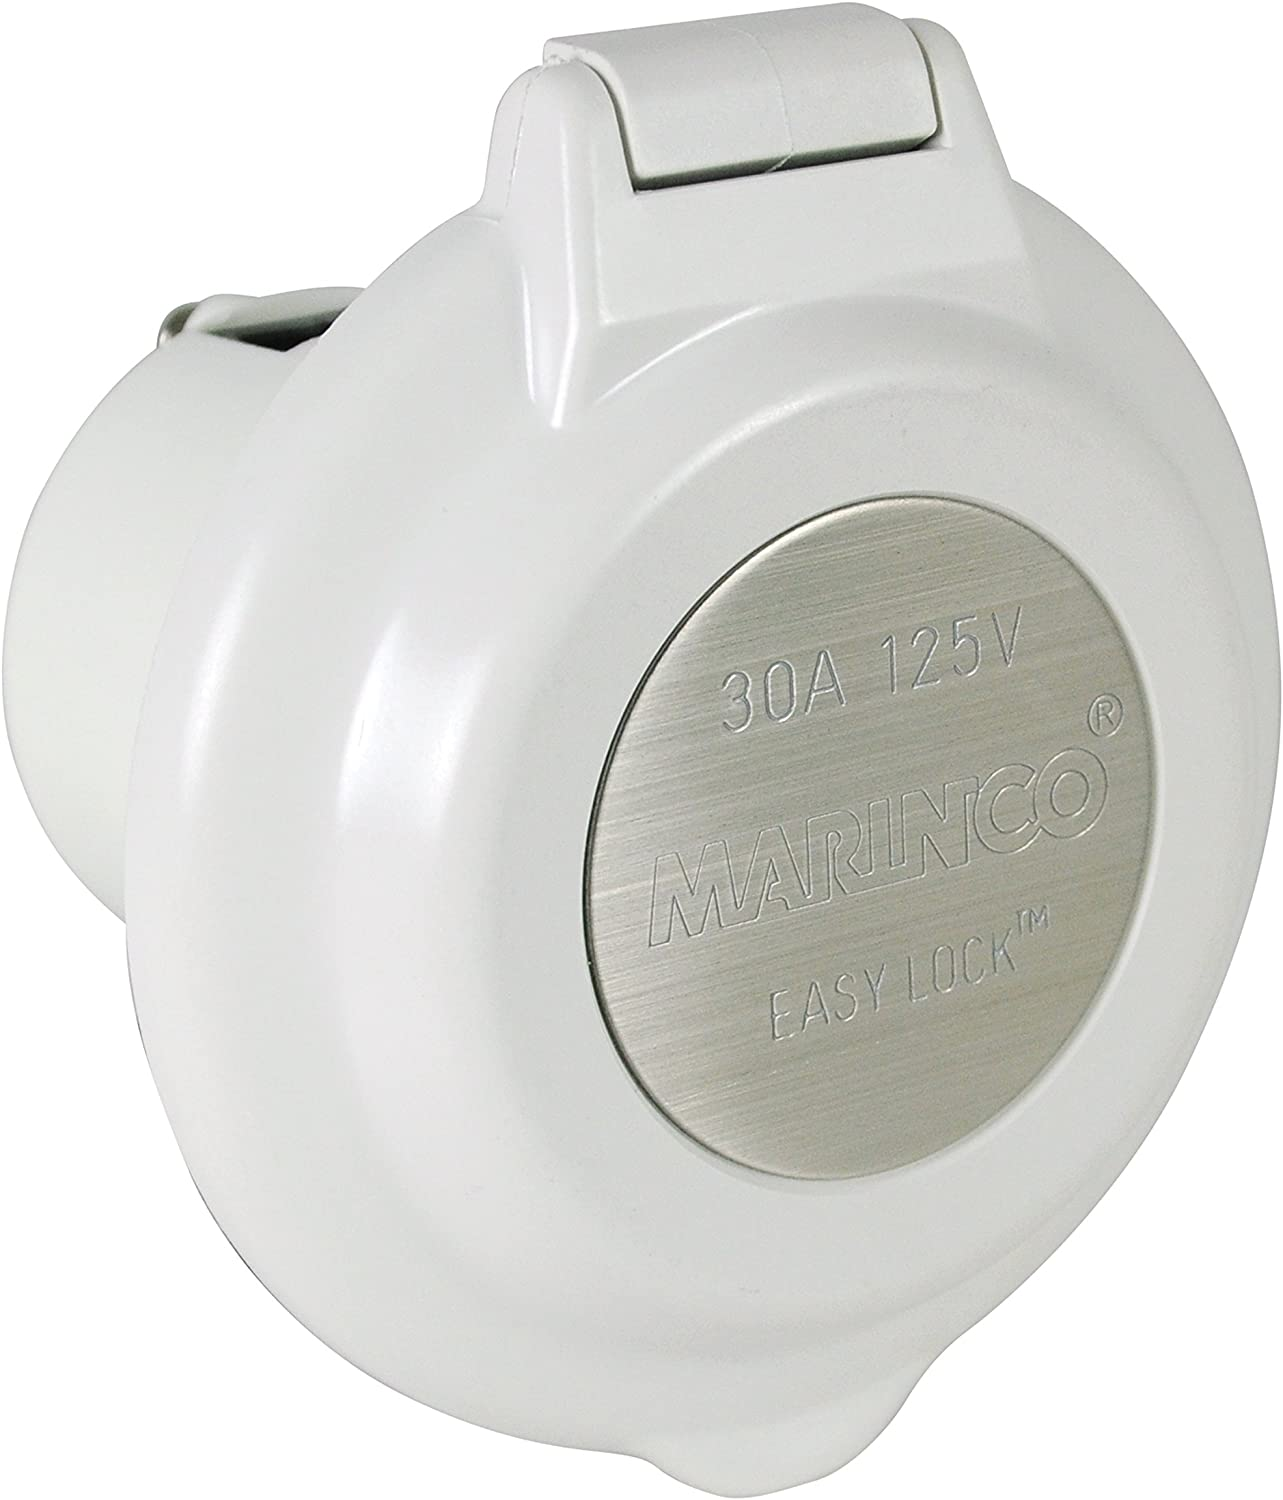 ParkPower 15A, 20A, 30A & 50A Power Inlets, Stainless Steel, 30 Amp, 125V: Sports & Outdoors